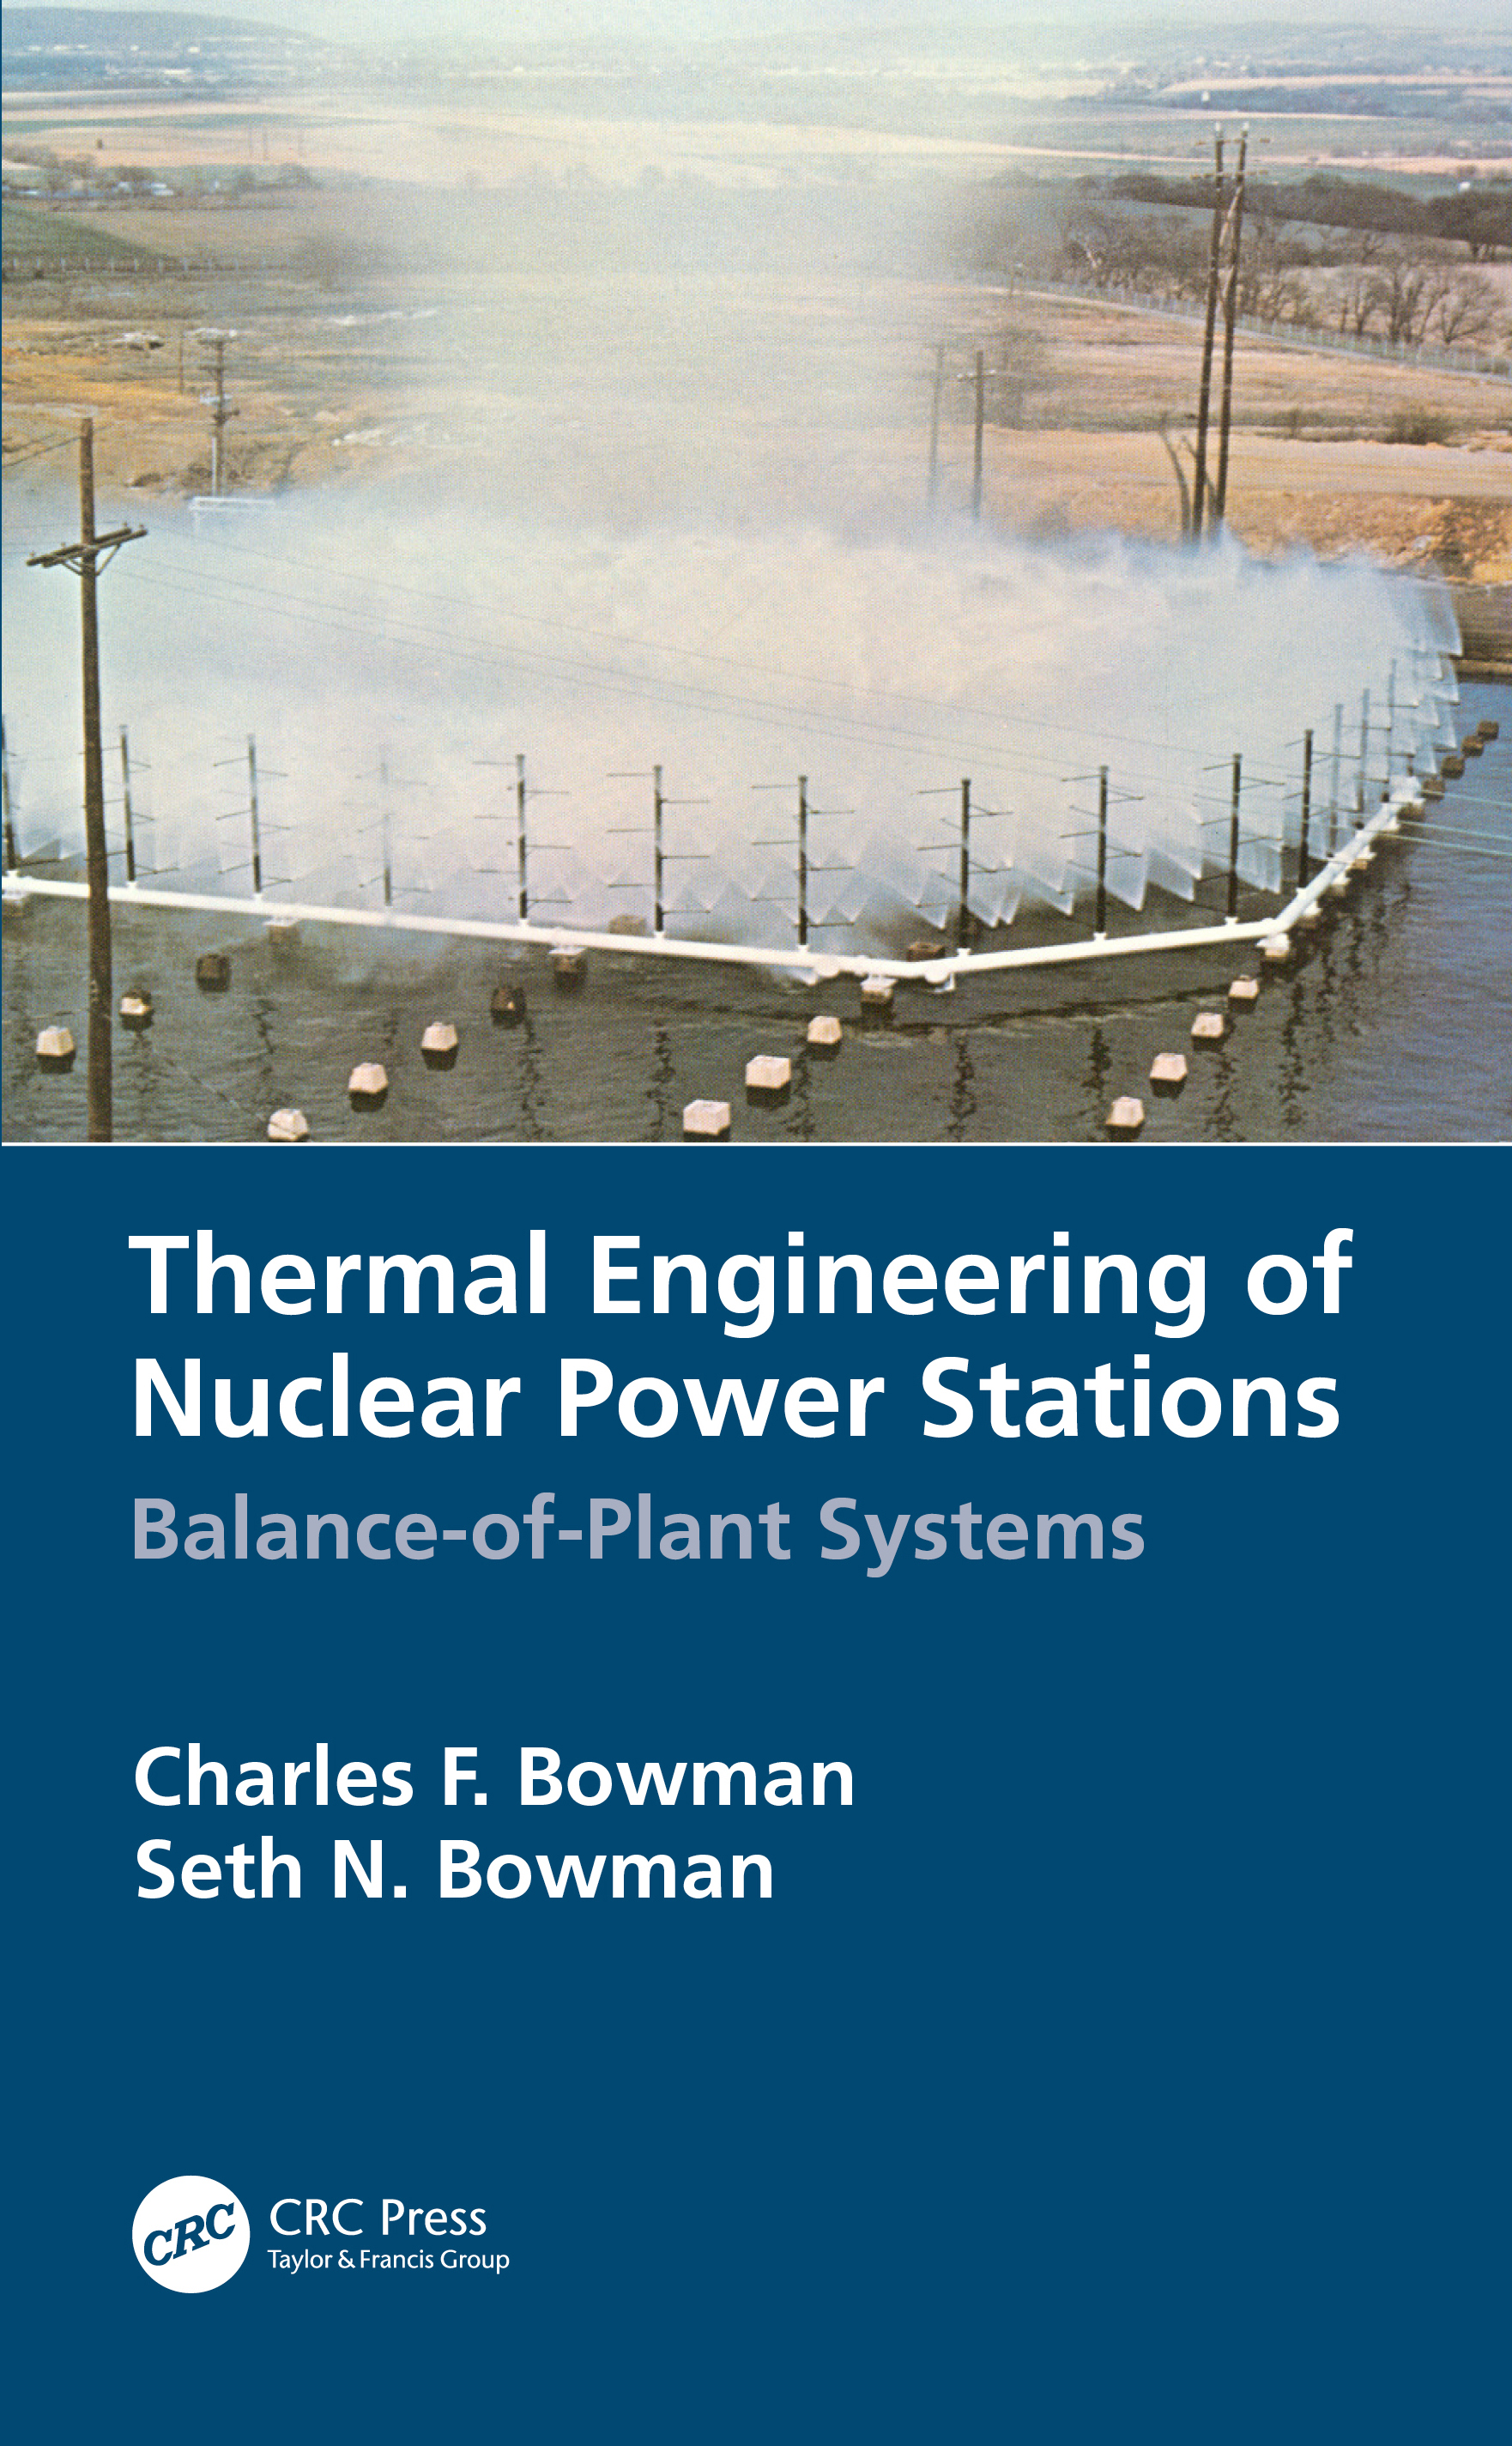 Thermal Engineering of Nuclear Power Stations: Balance-of-Plant Systems book cover